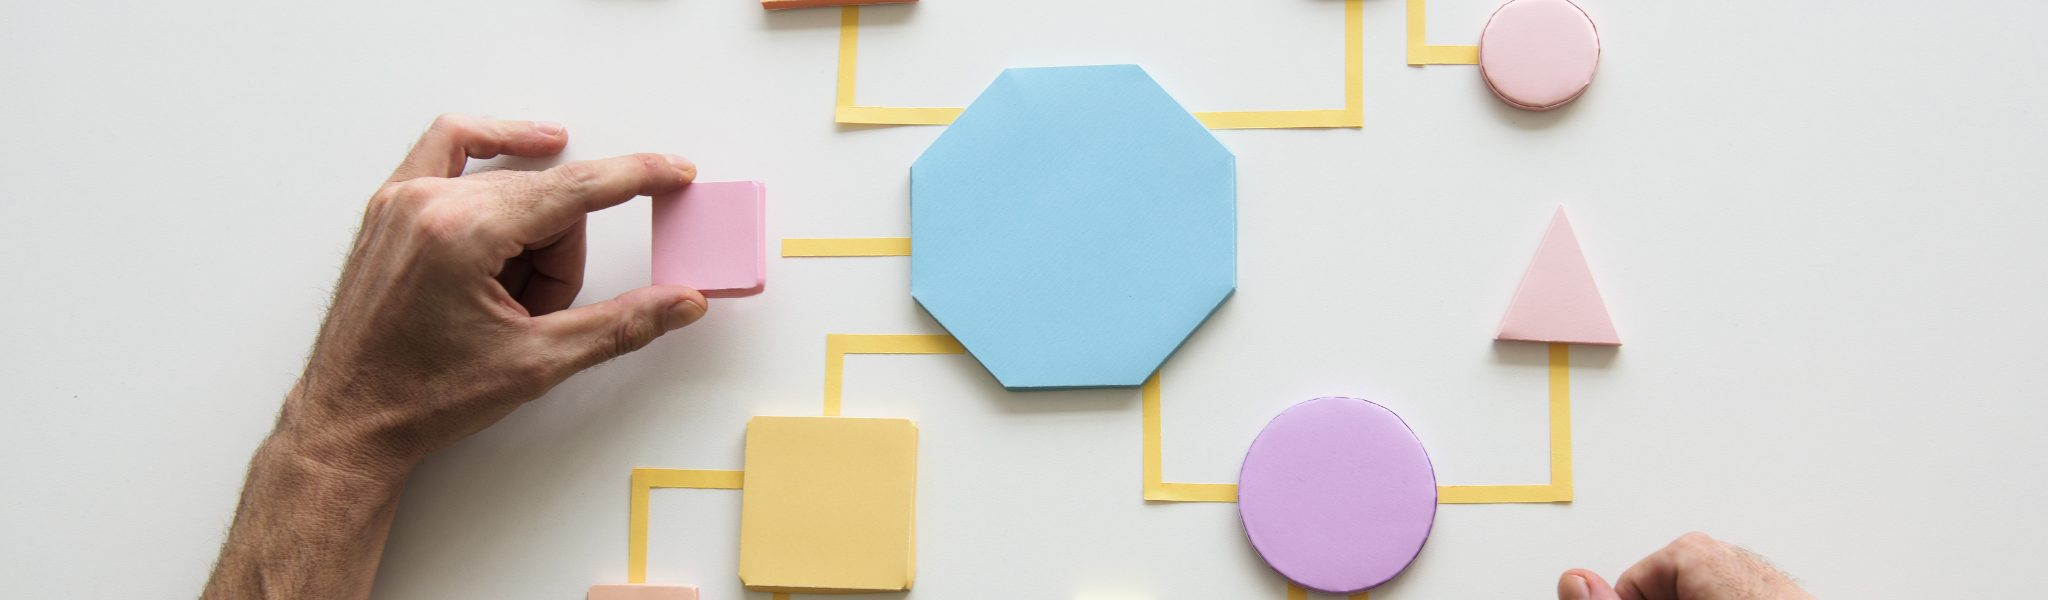 Man adding a box to a CX strategy made of shapes